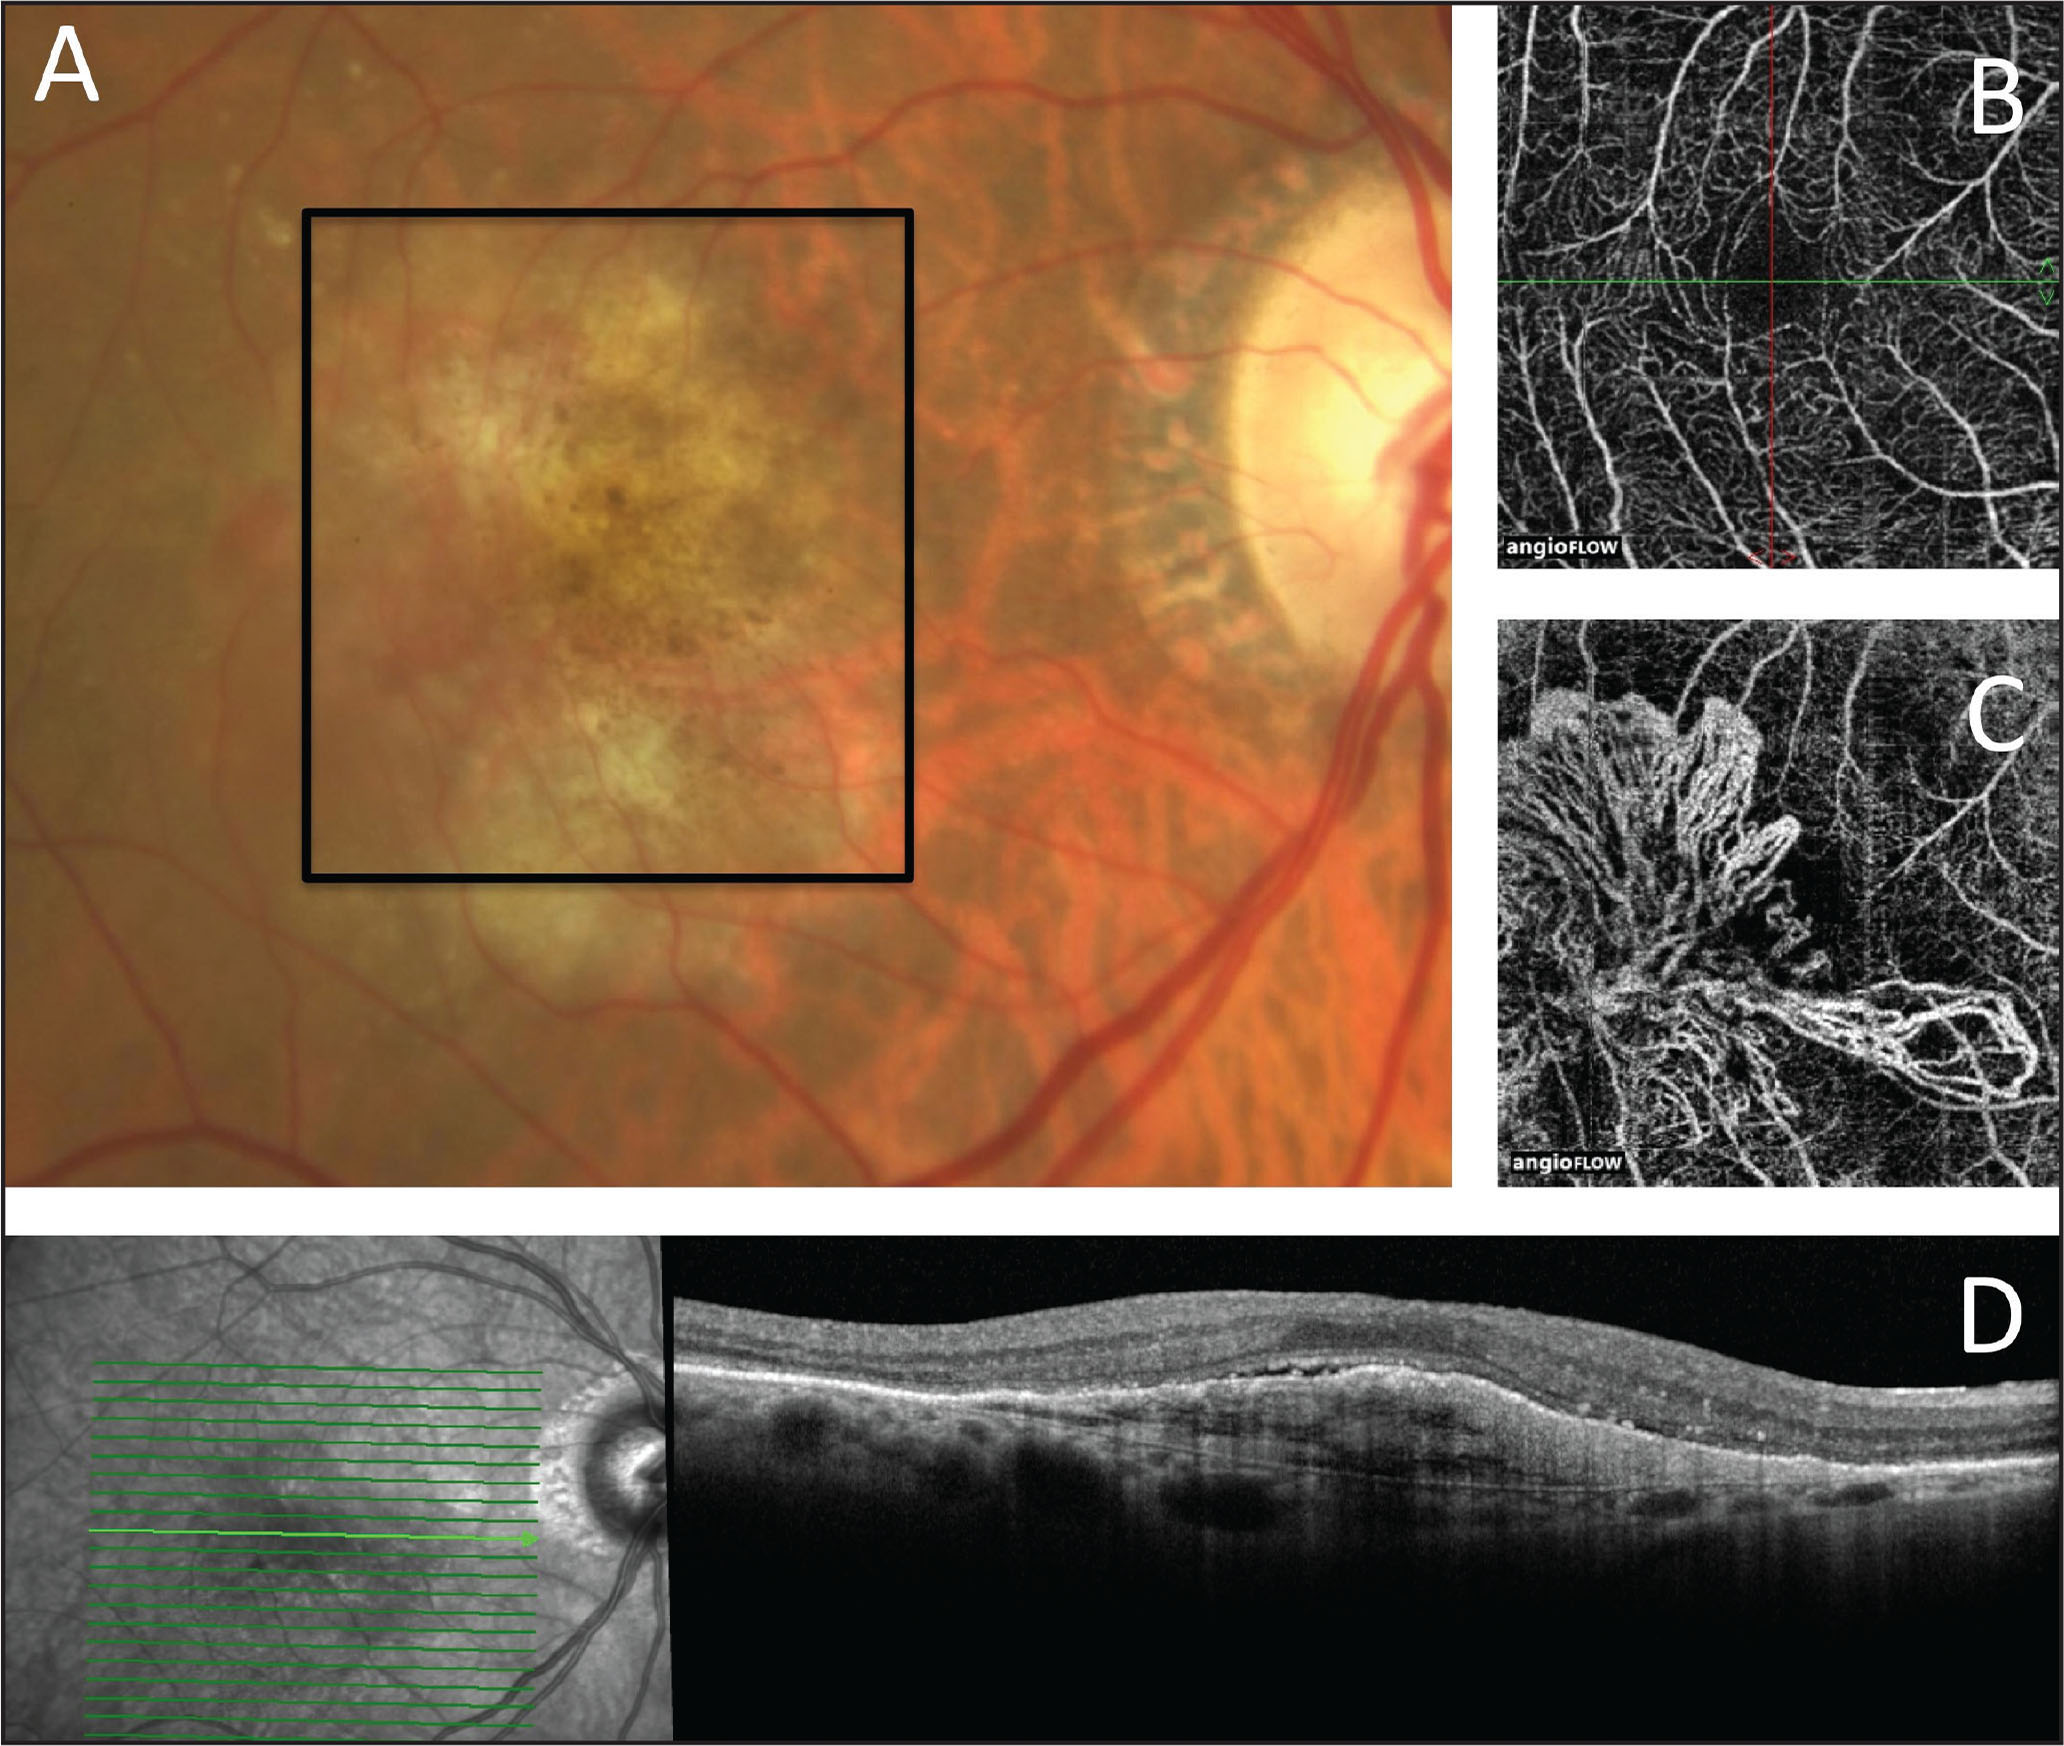 (A) Color photograph shows the right eye of an 82-year-old woman with neovascular age-related macular degeneration after 68 intravitreal anti-VEGF injections at intervals of approximately every 5 to 6 weeks. Visual acuity is 20/50. (B) En face OCT angiography at the level of the inner retina shows a normal retinal vascular pattern. (C) En face OCT angiography segmenting just below the retinal pigment epithelium shows an extensive tangled network of mature type 1 neovessels. (D) SD-OCT shows type 1 neovascularization with a small amount of overlying subretinal fluid and fairly well preserved outer retinal architecture.